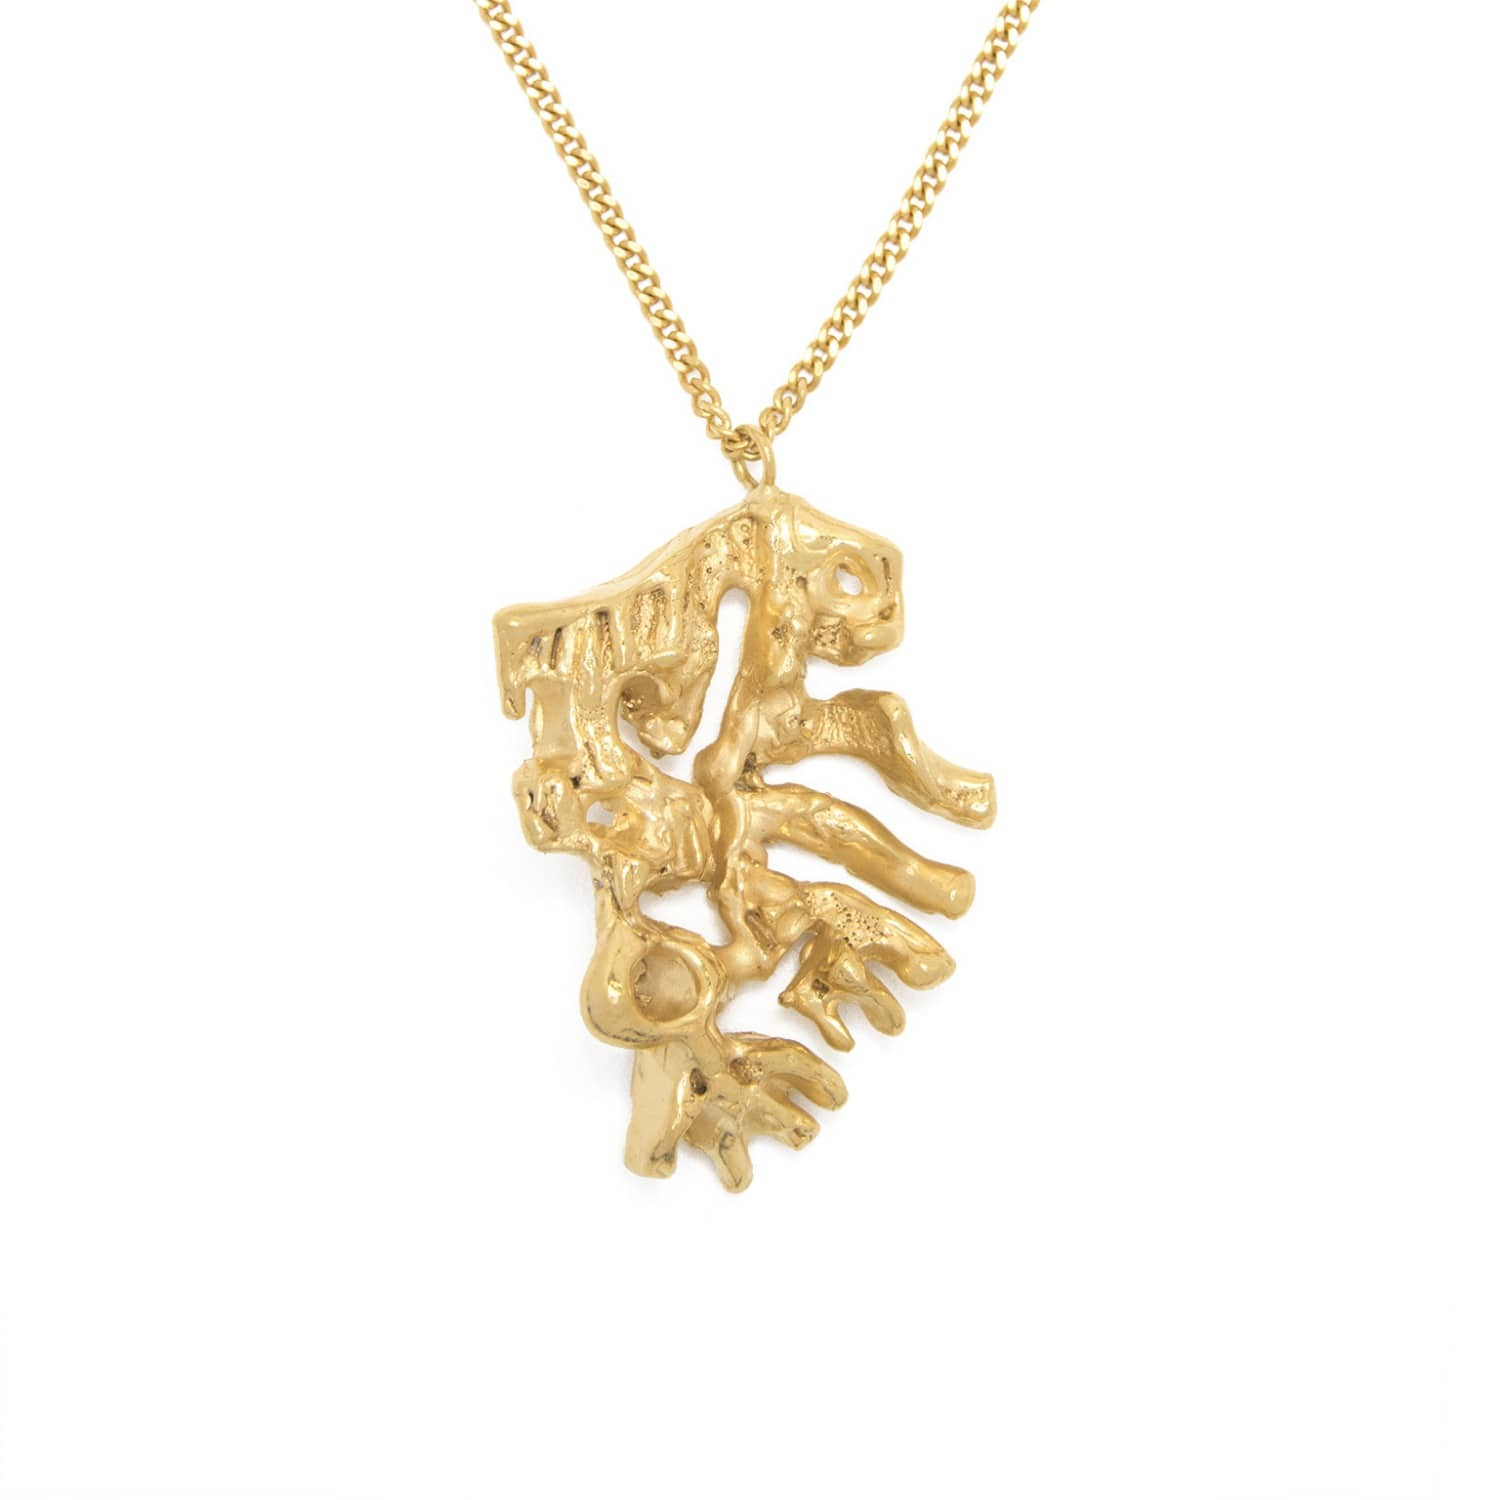 necklaces jewelry zodiac org horoscope sale at gold tiger chinese id for necklace v lee pendant loveness side